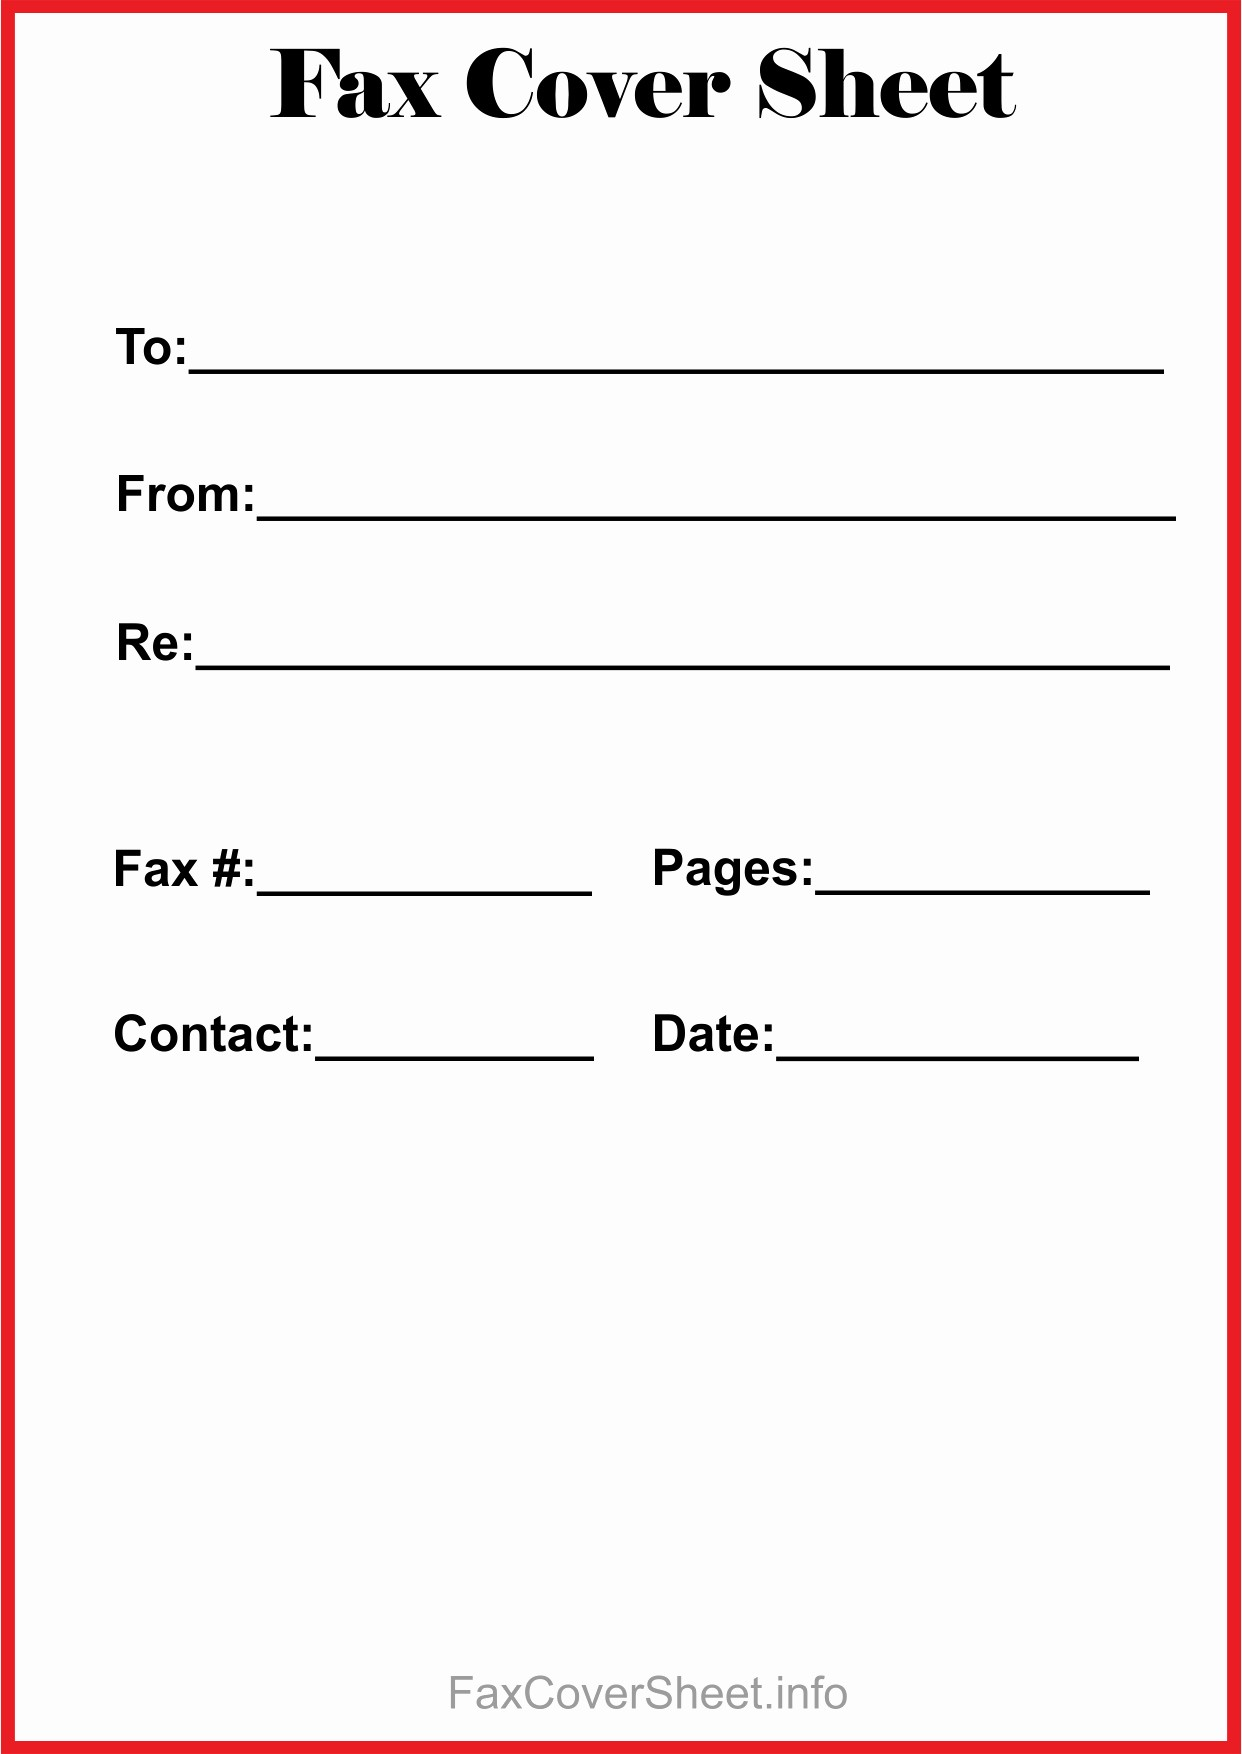 Sample Fax Cover Sheets Template Fresh Free Fax Cover Sheet Template Download